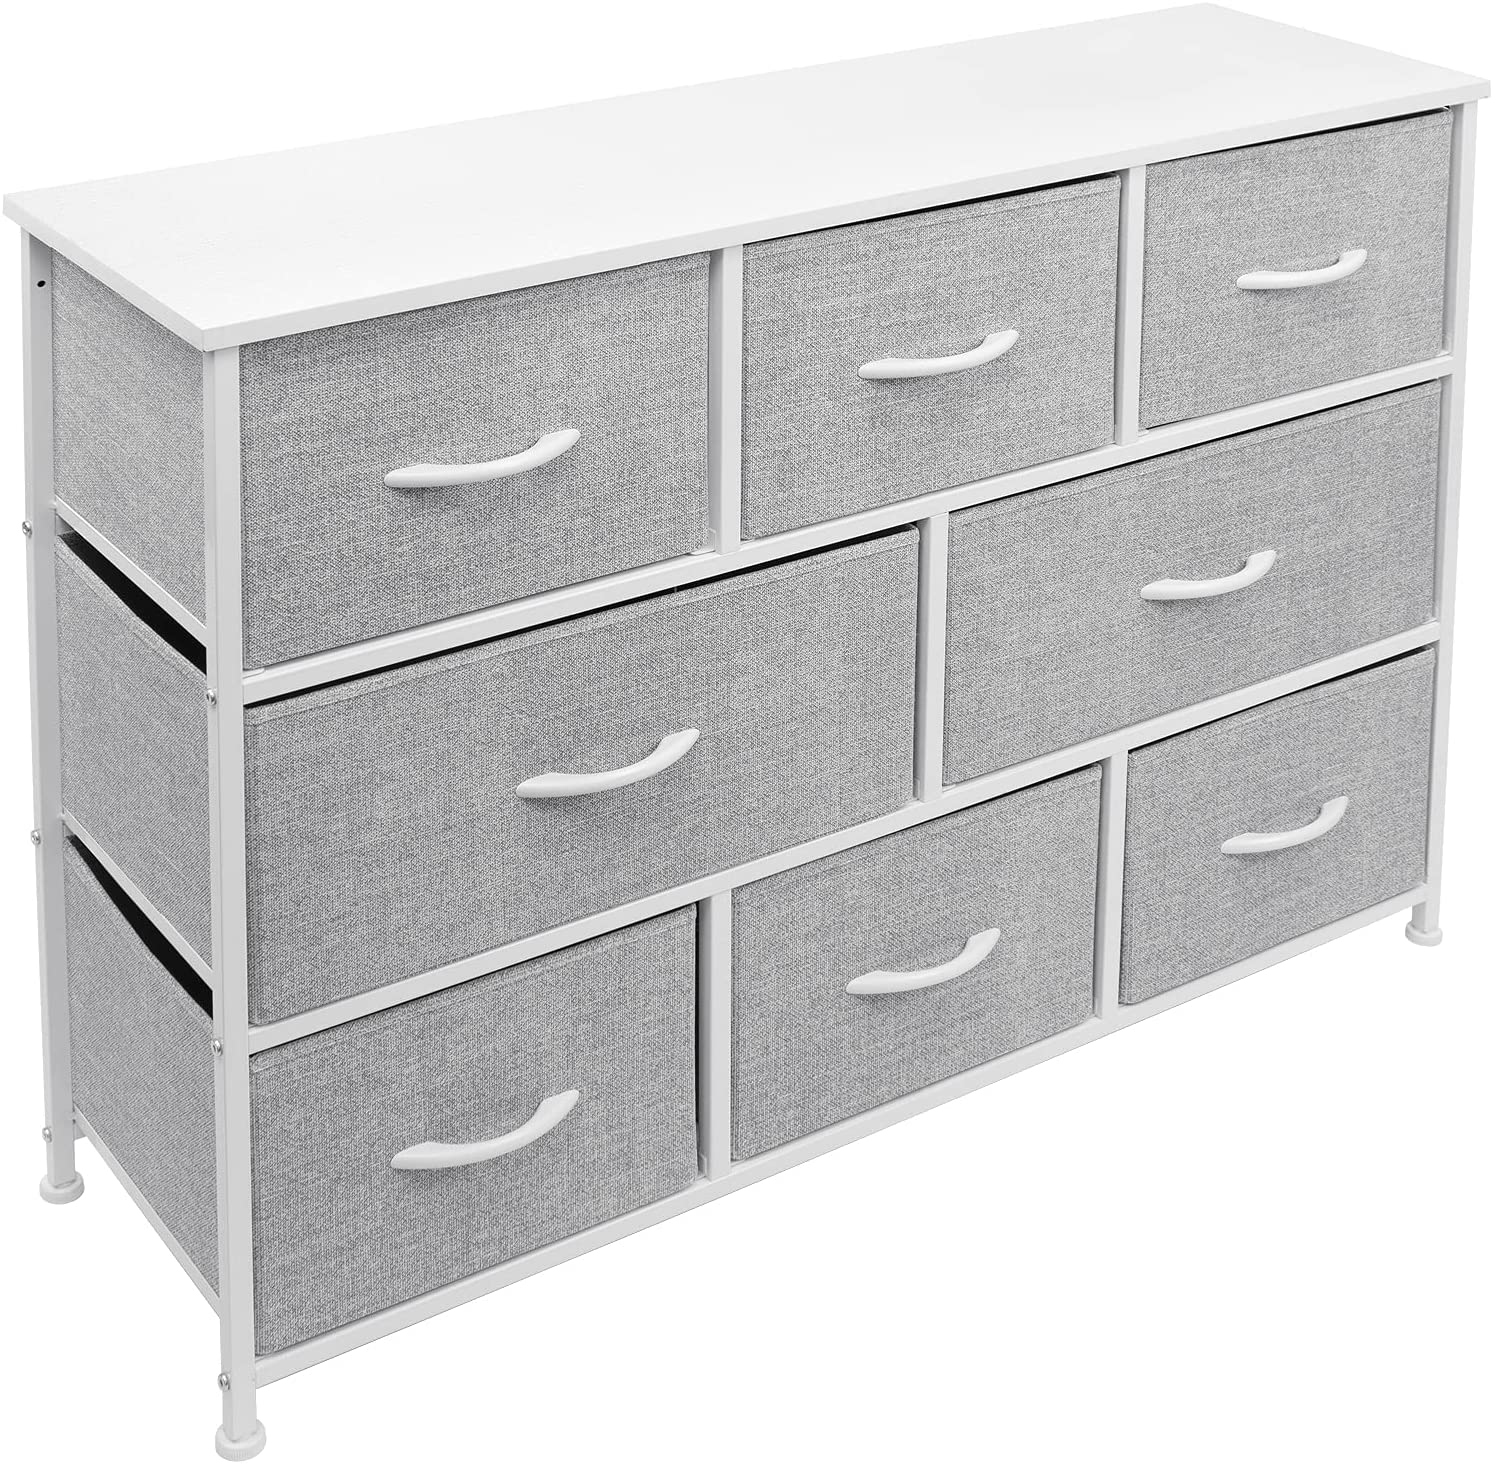 Sorbus Dresser with 8 Drawers - Furniture Storage Chest Tower Unit for Bedroom, Hallway, Closet, Office Organization - Steel Iron Frame, Rustic Farmhouse Wood Top, Fabric Bins (White)